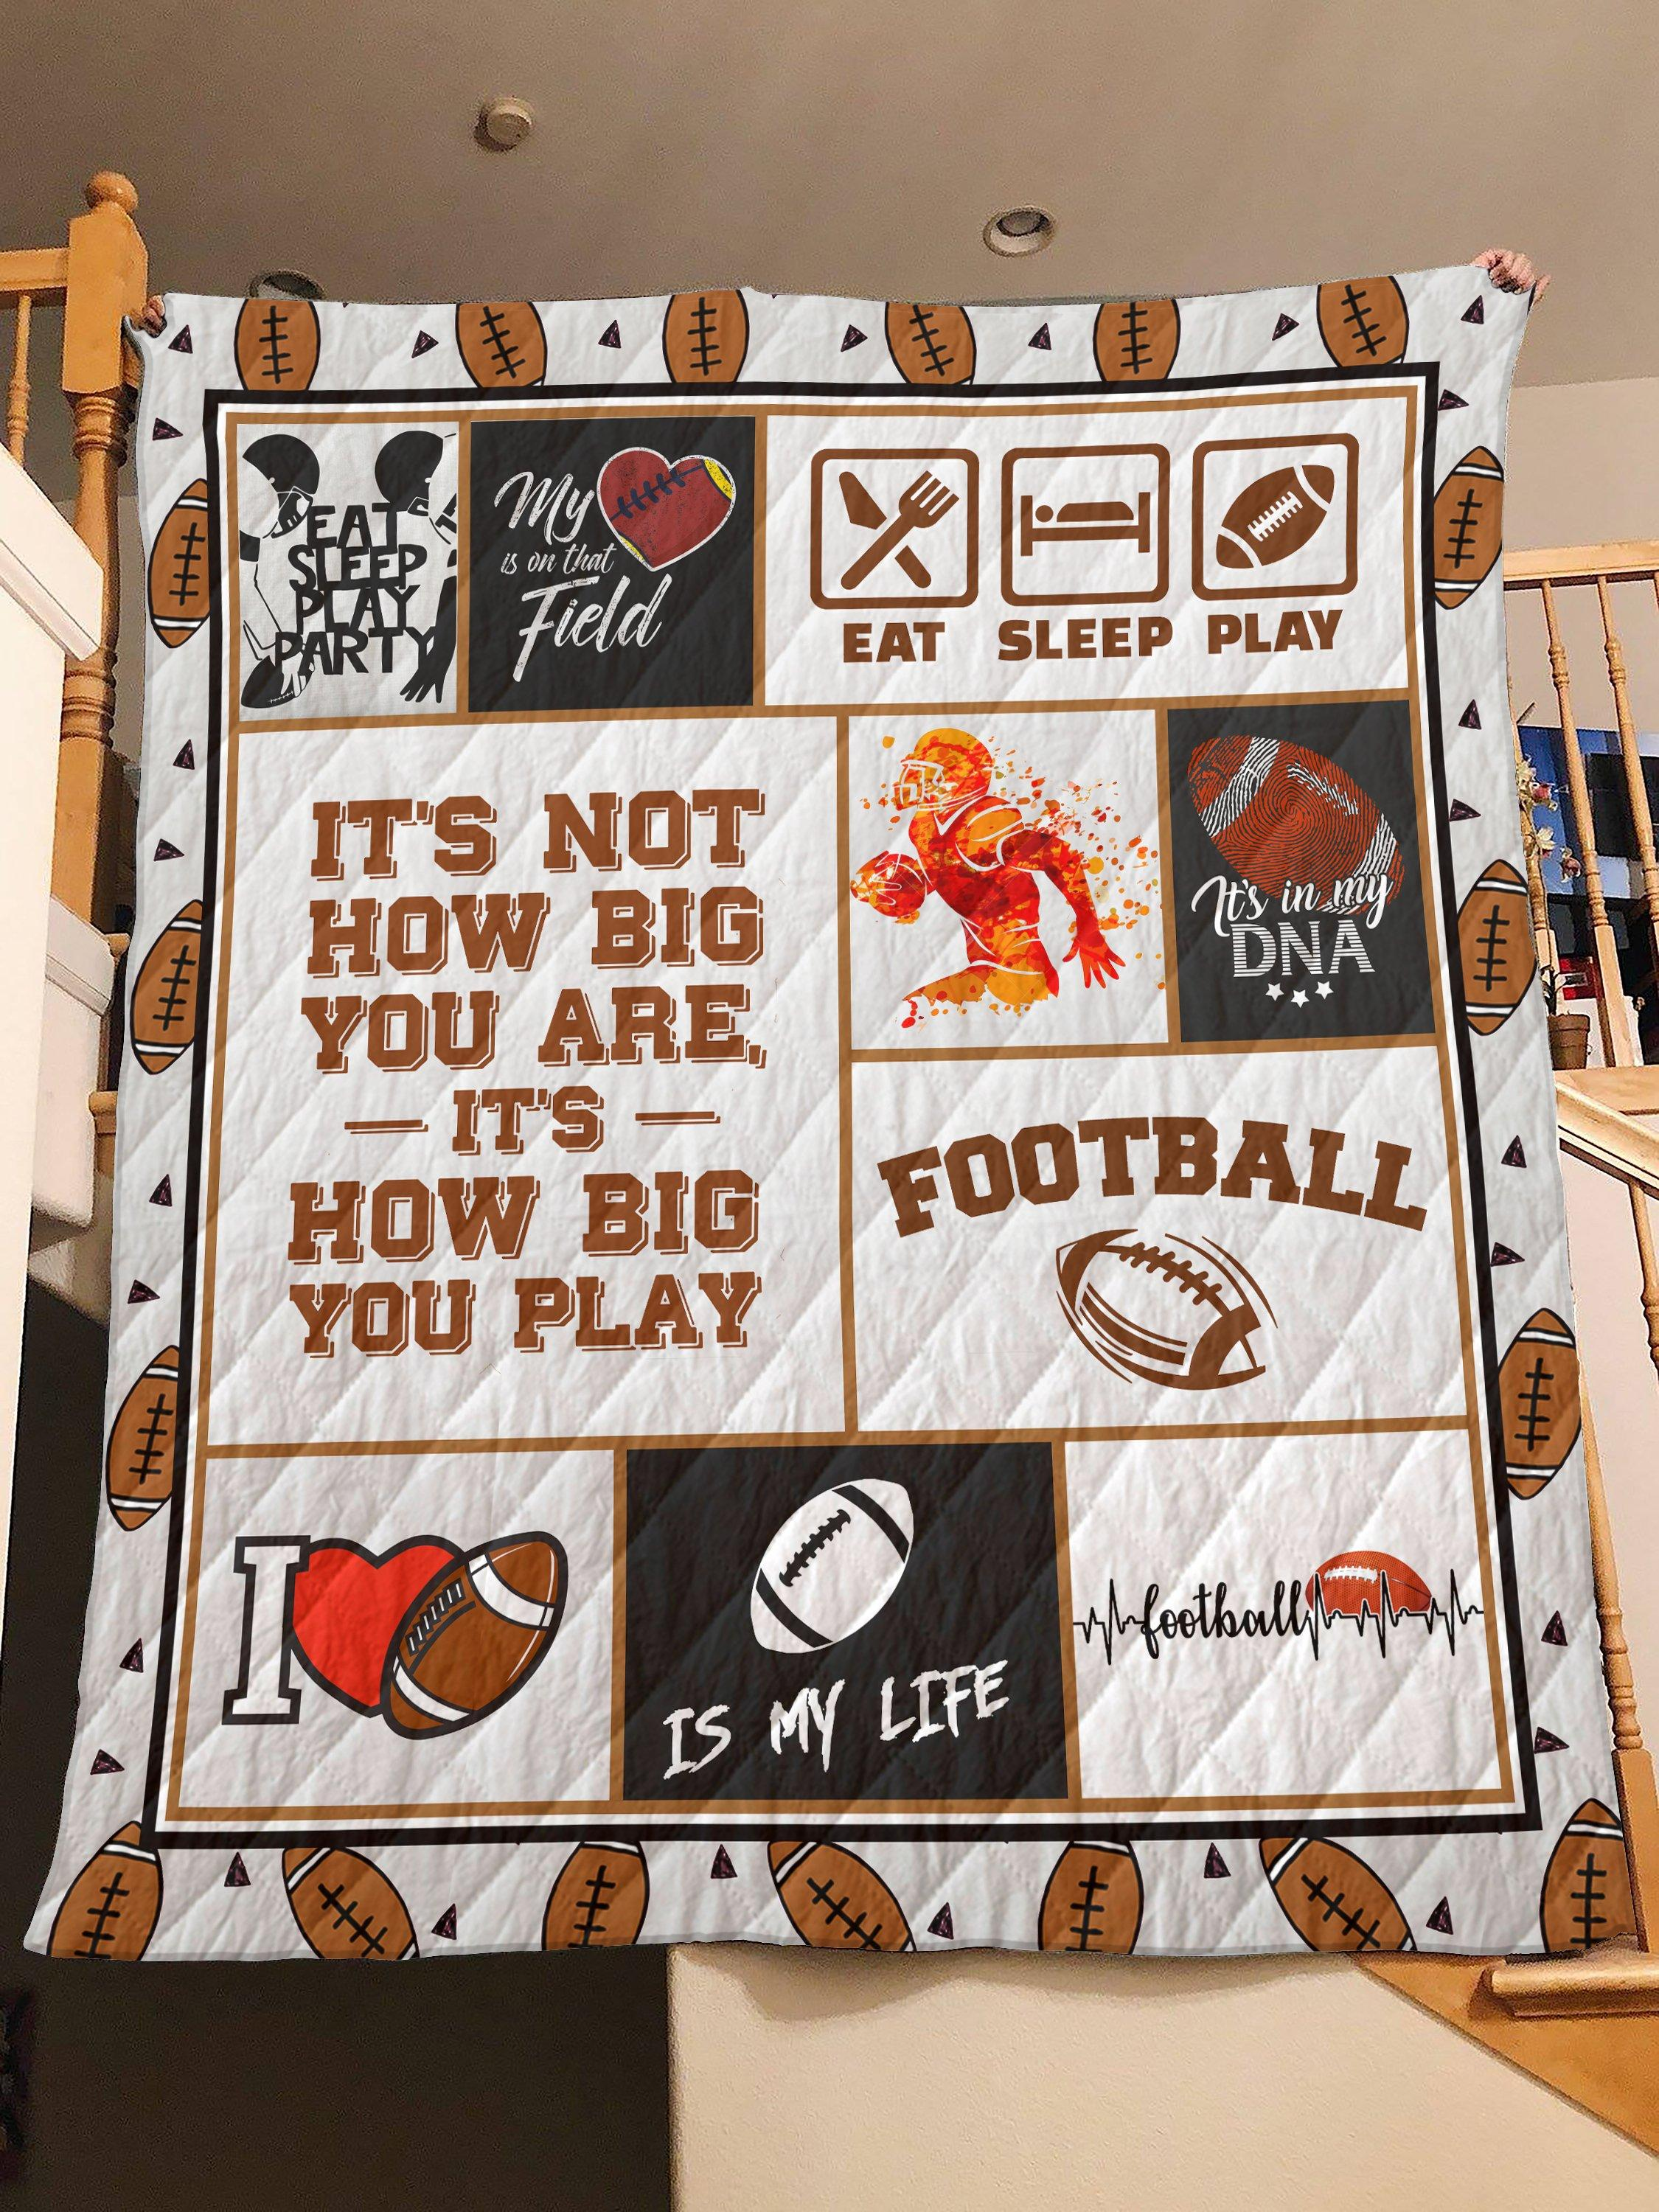 Football it's not how big you are it's how big you play quilt - king